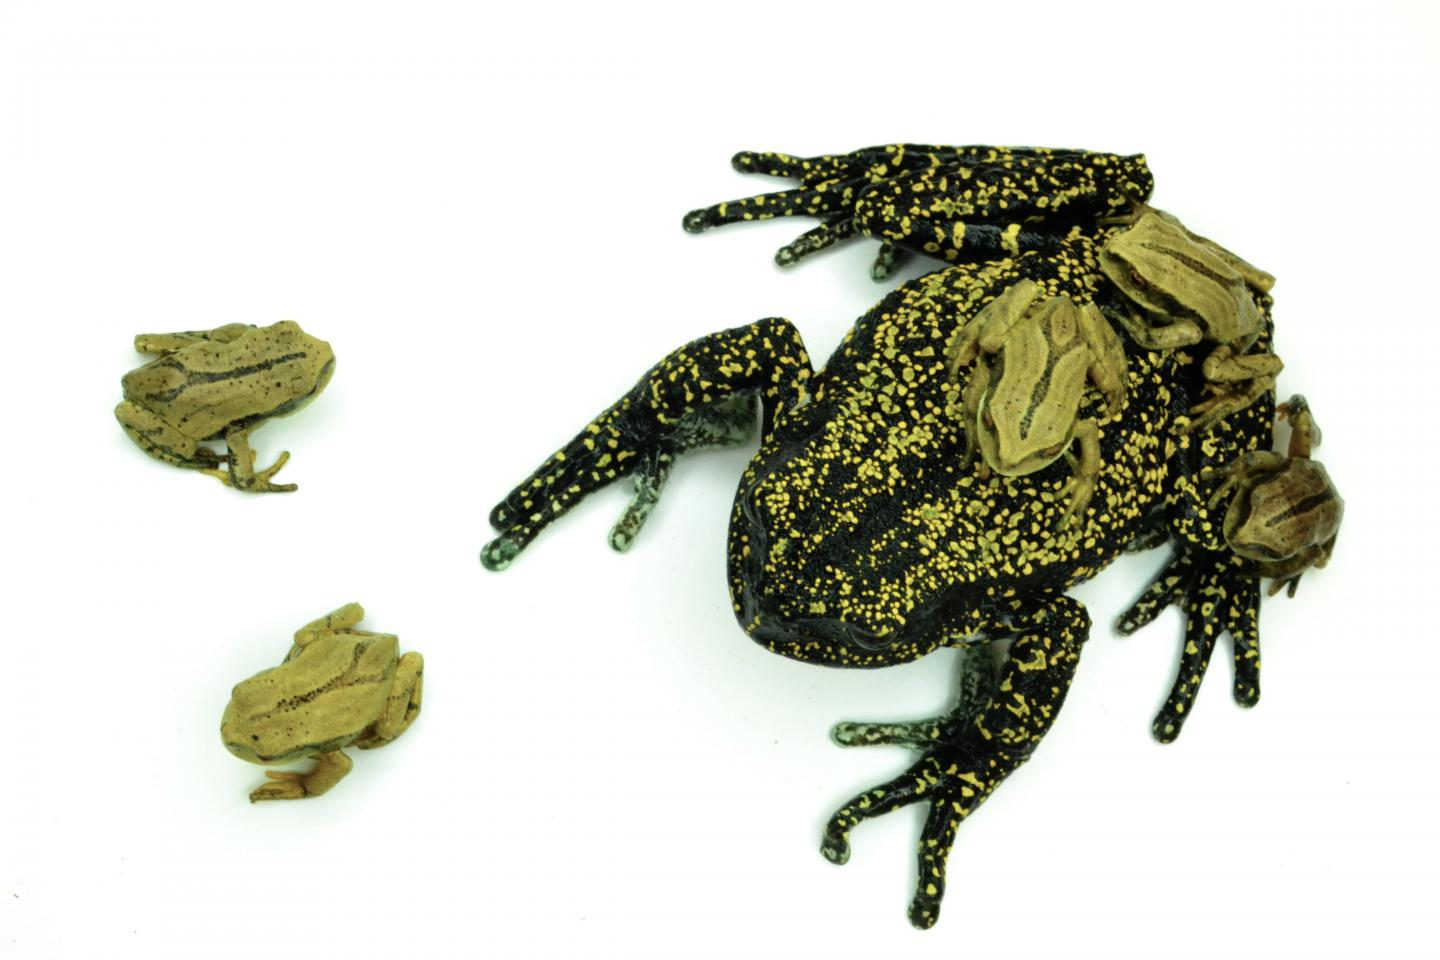 Earth's most invasive species is a frog-killing fungus